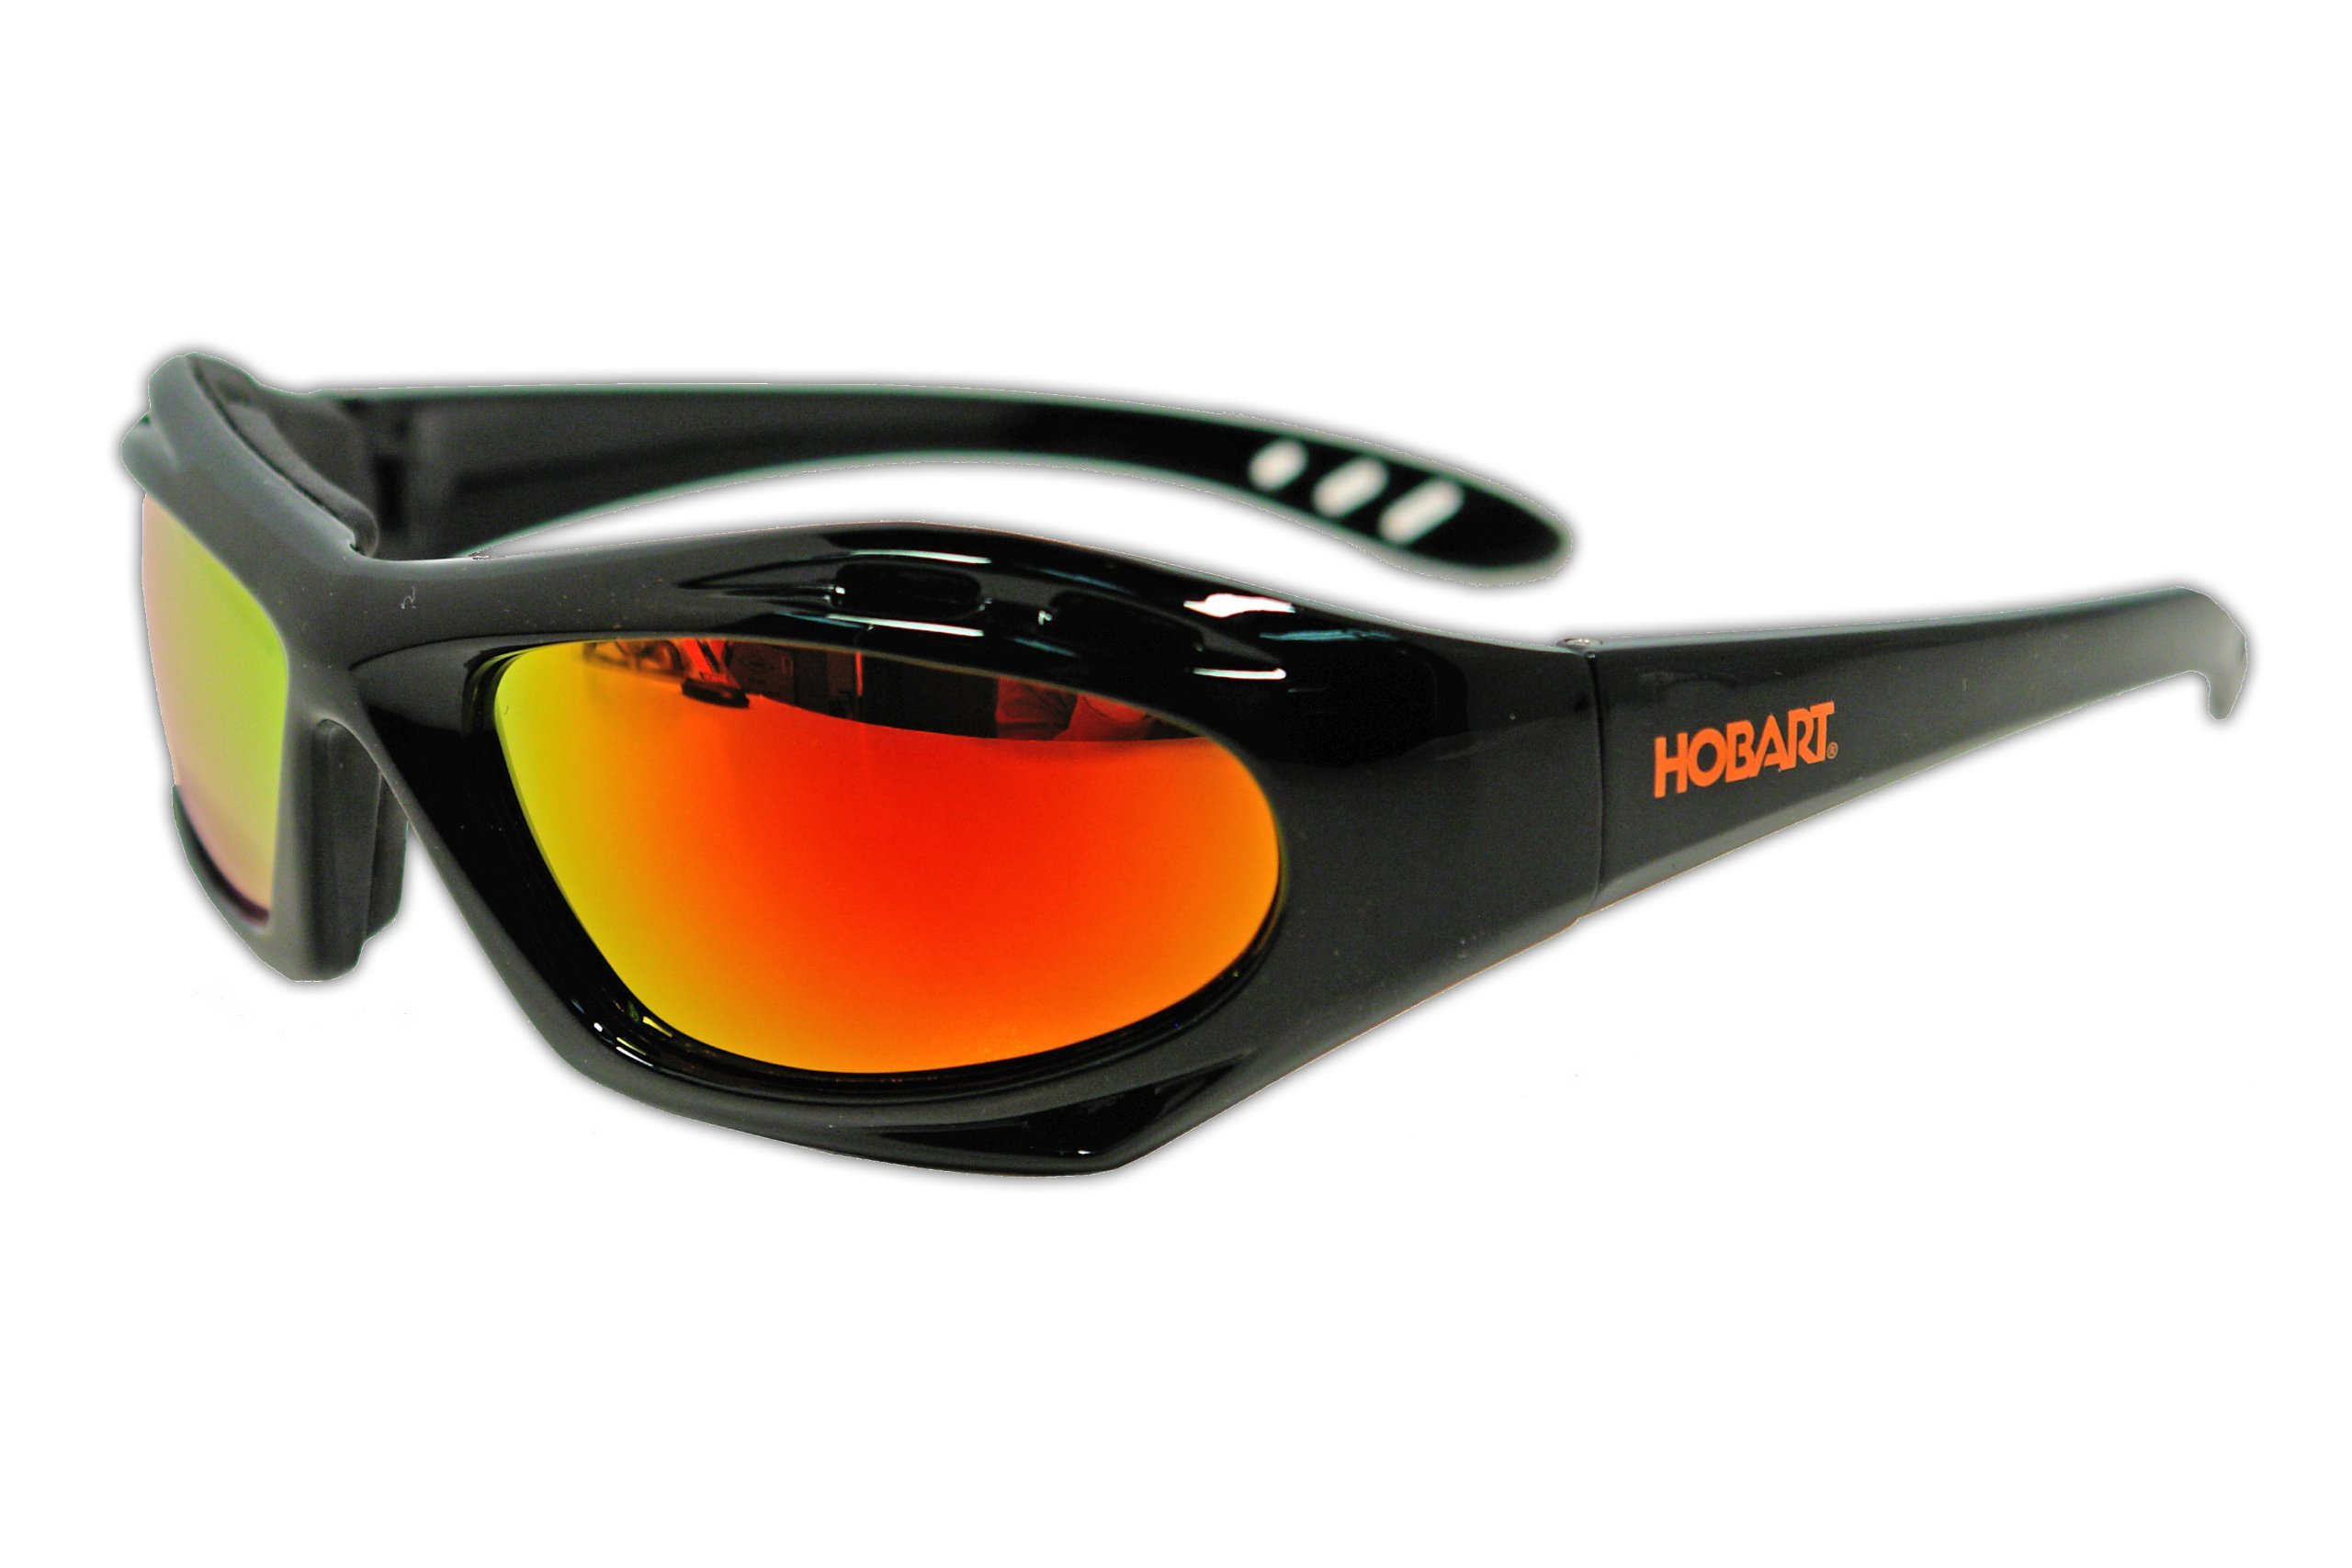 Hobart 770726 Shade 5, Mirrored Lens Safety Glasses